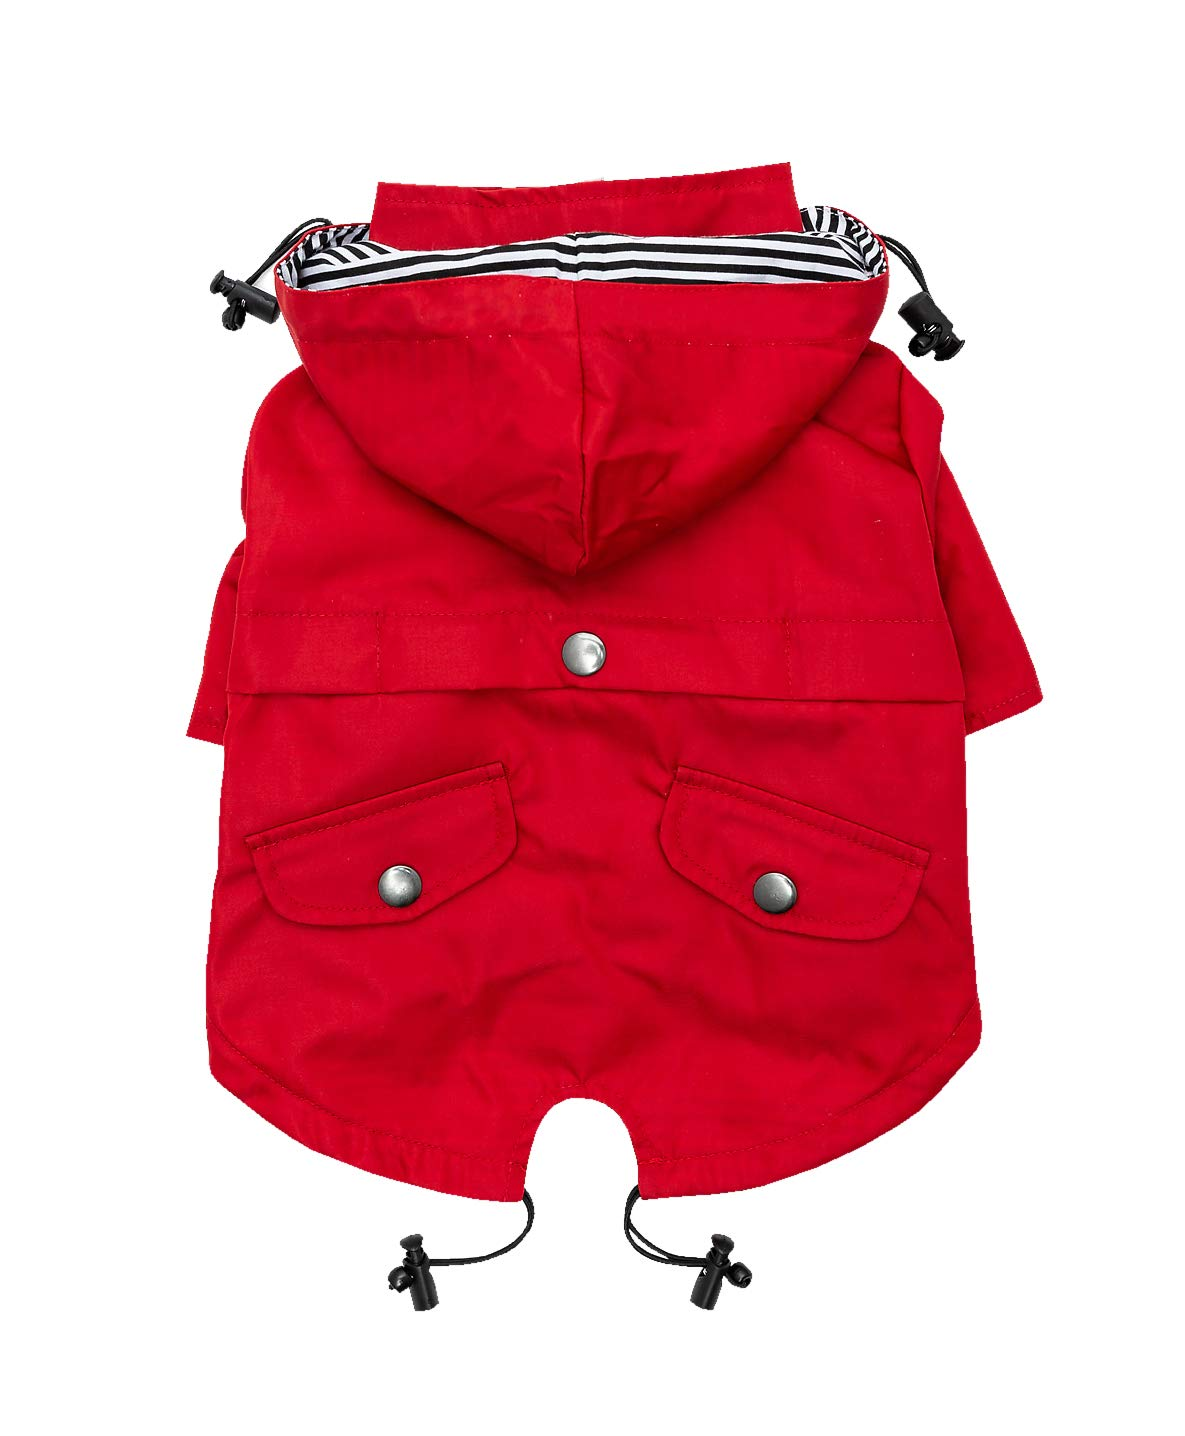 Ellie Dog Wear Red Zip Up Dog Raincoat with Reflective Buttons, Pockets, Rain/Water Resistant, Adjustable Drawstring, Removable Hoodie - Size XS to XXL Available - Stylish Premium Dog Raincoats (M) by Ellie Dog Wear (Image #2)